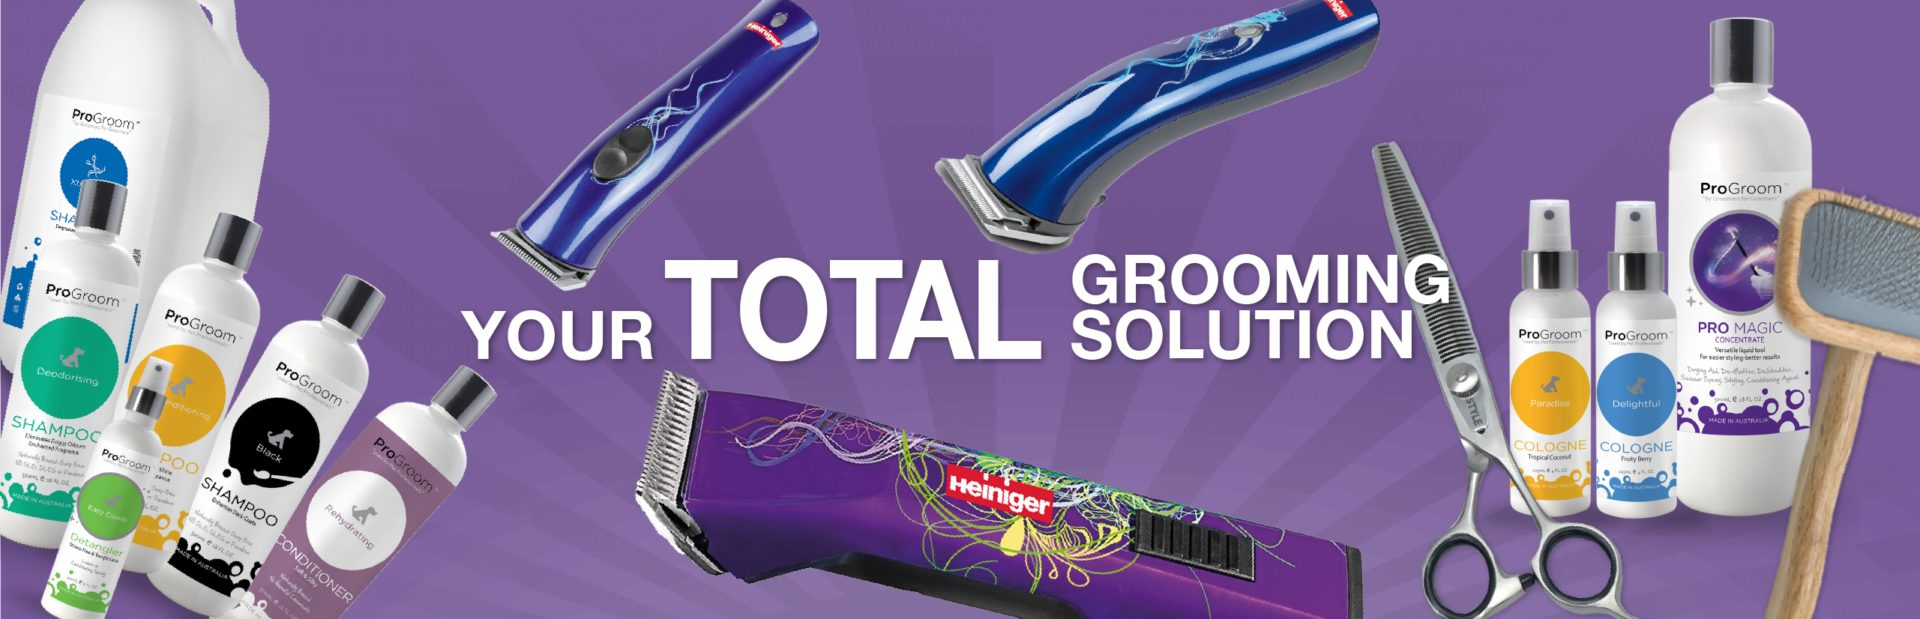 Total Grooming Solution 09